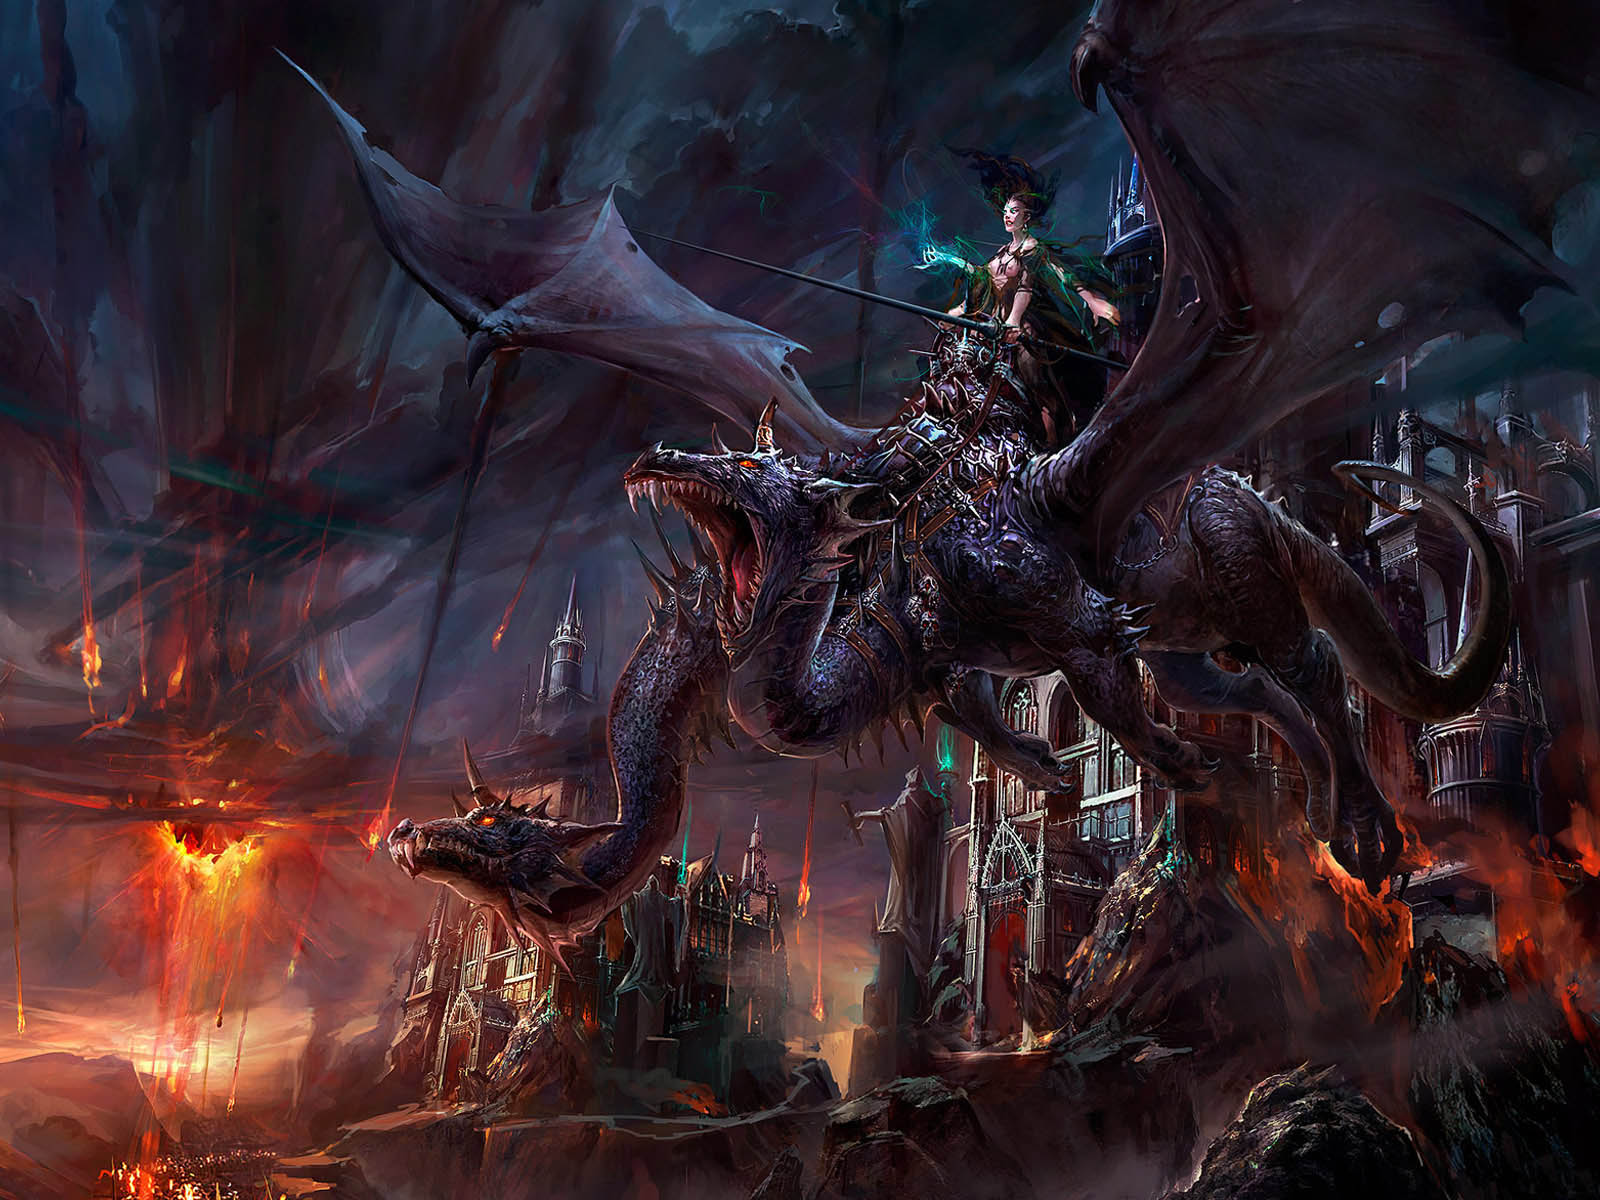 Home Unlabelled Dragon wallpaperDownload Dragon wallpaper 1600x1200